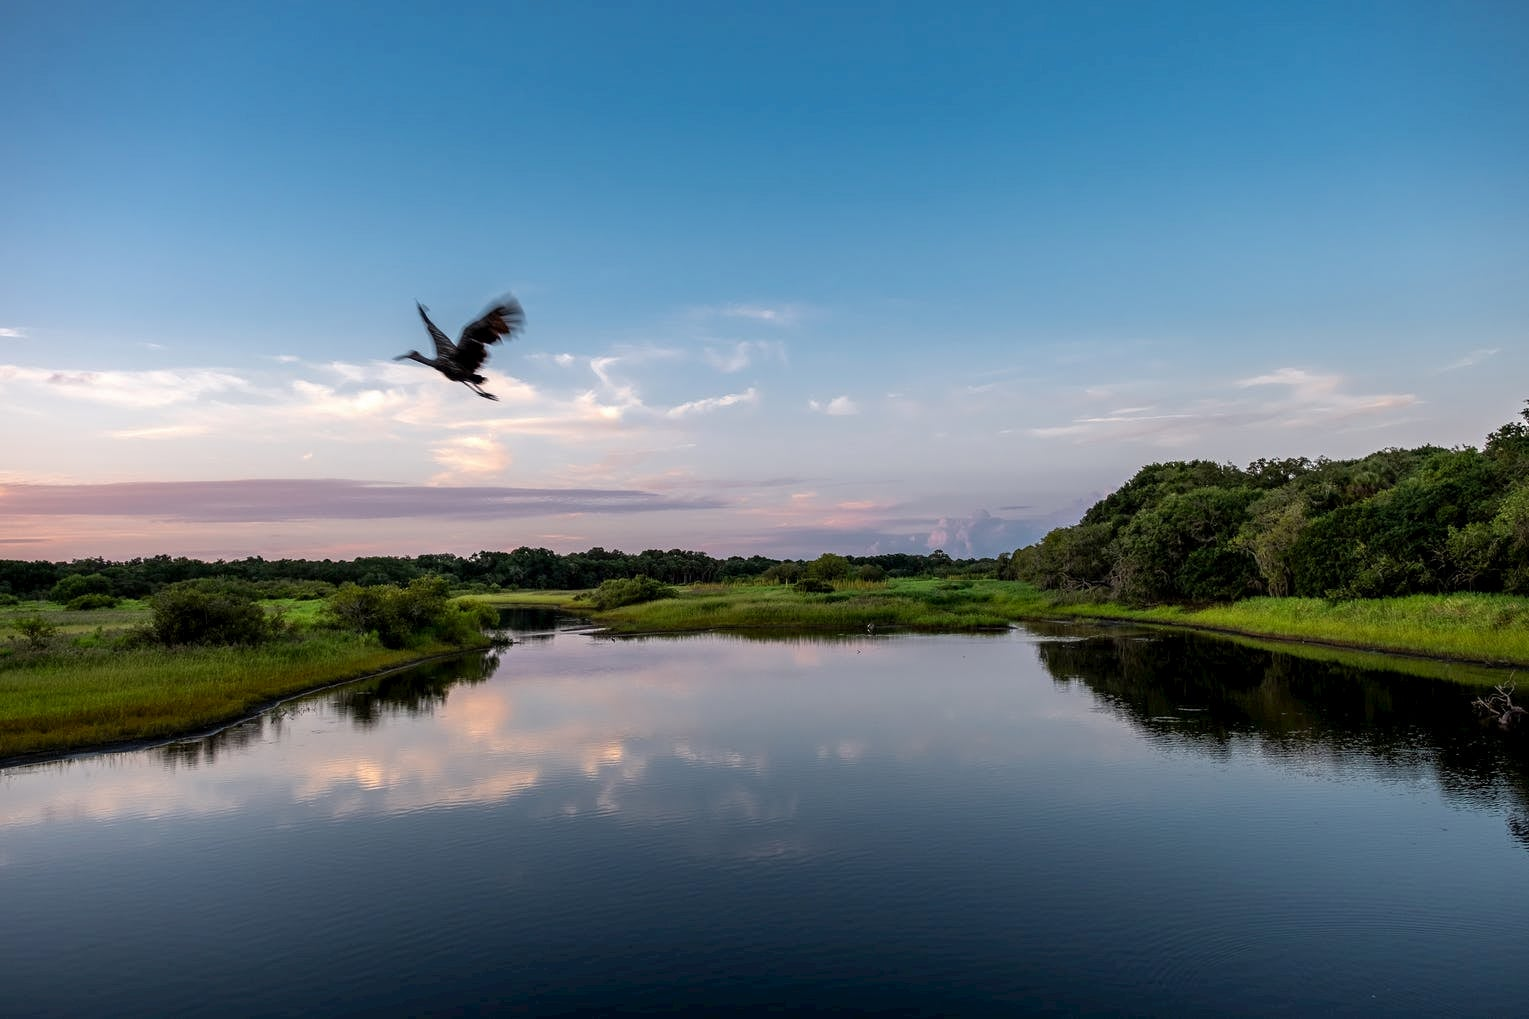 Bird in motion flying above a glassy river surrounded by marshlands.